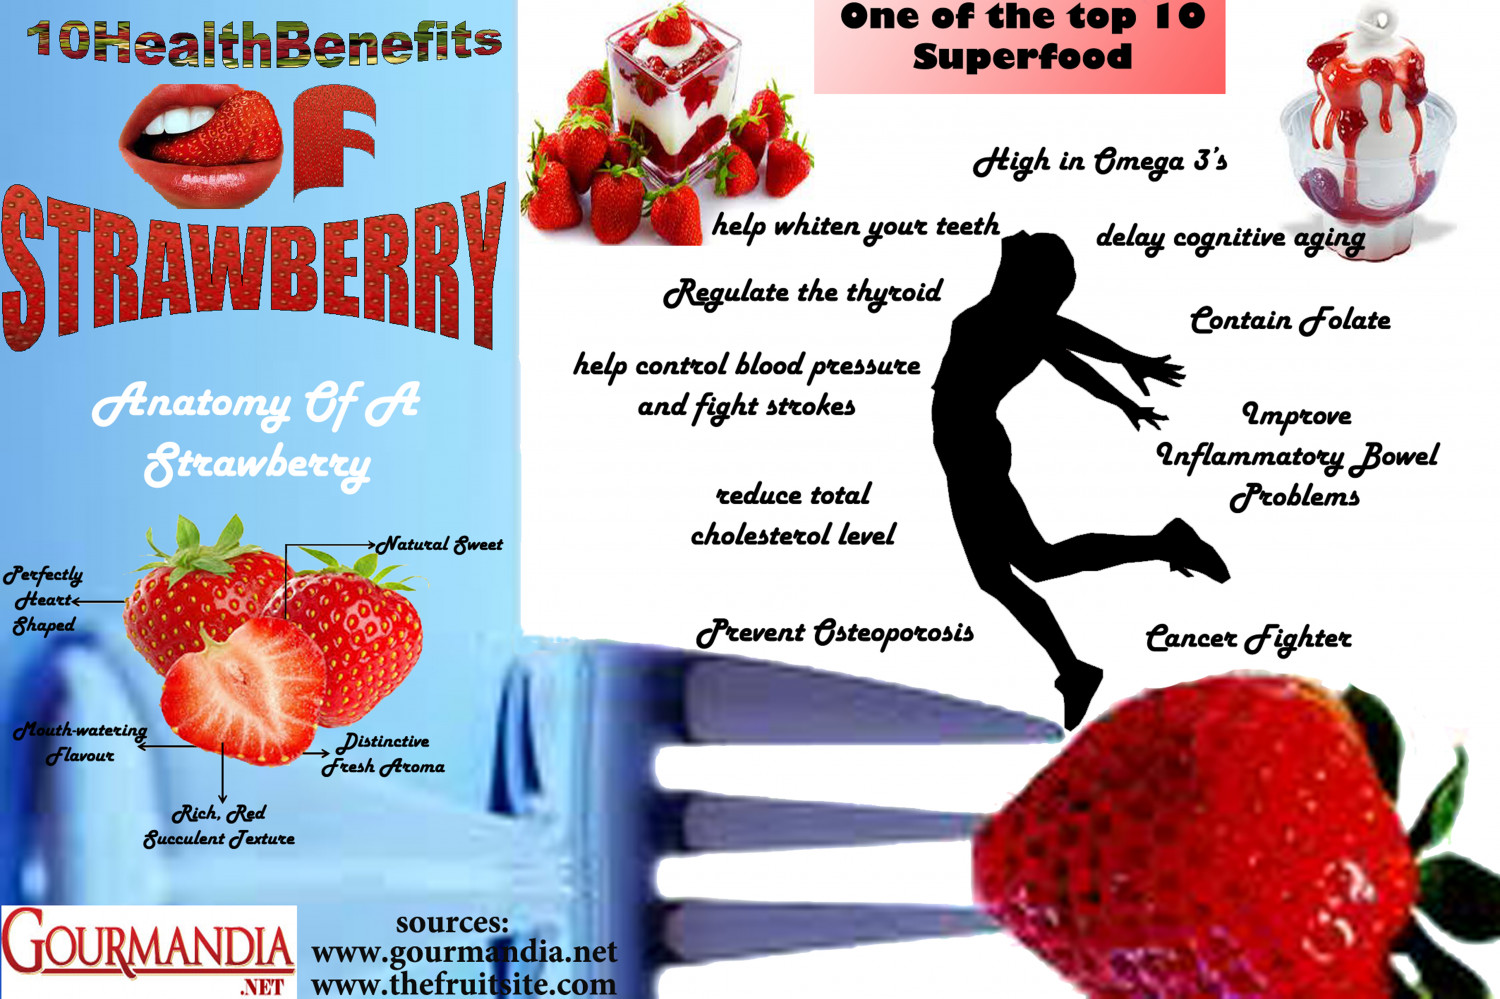 10 Health Benefits of Strawberry   Visual.ly